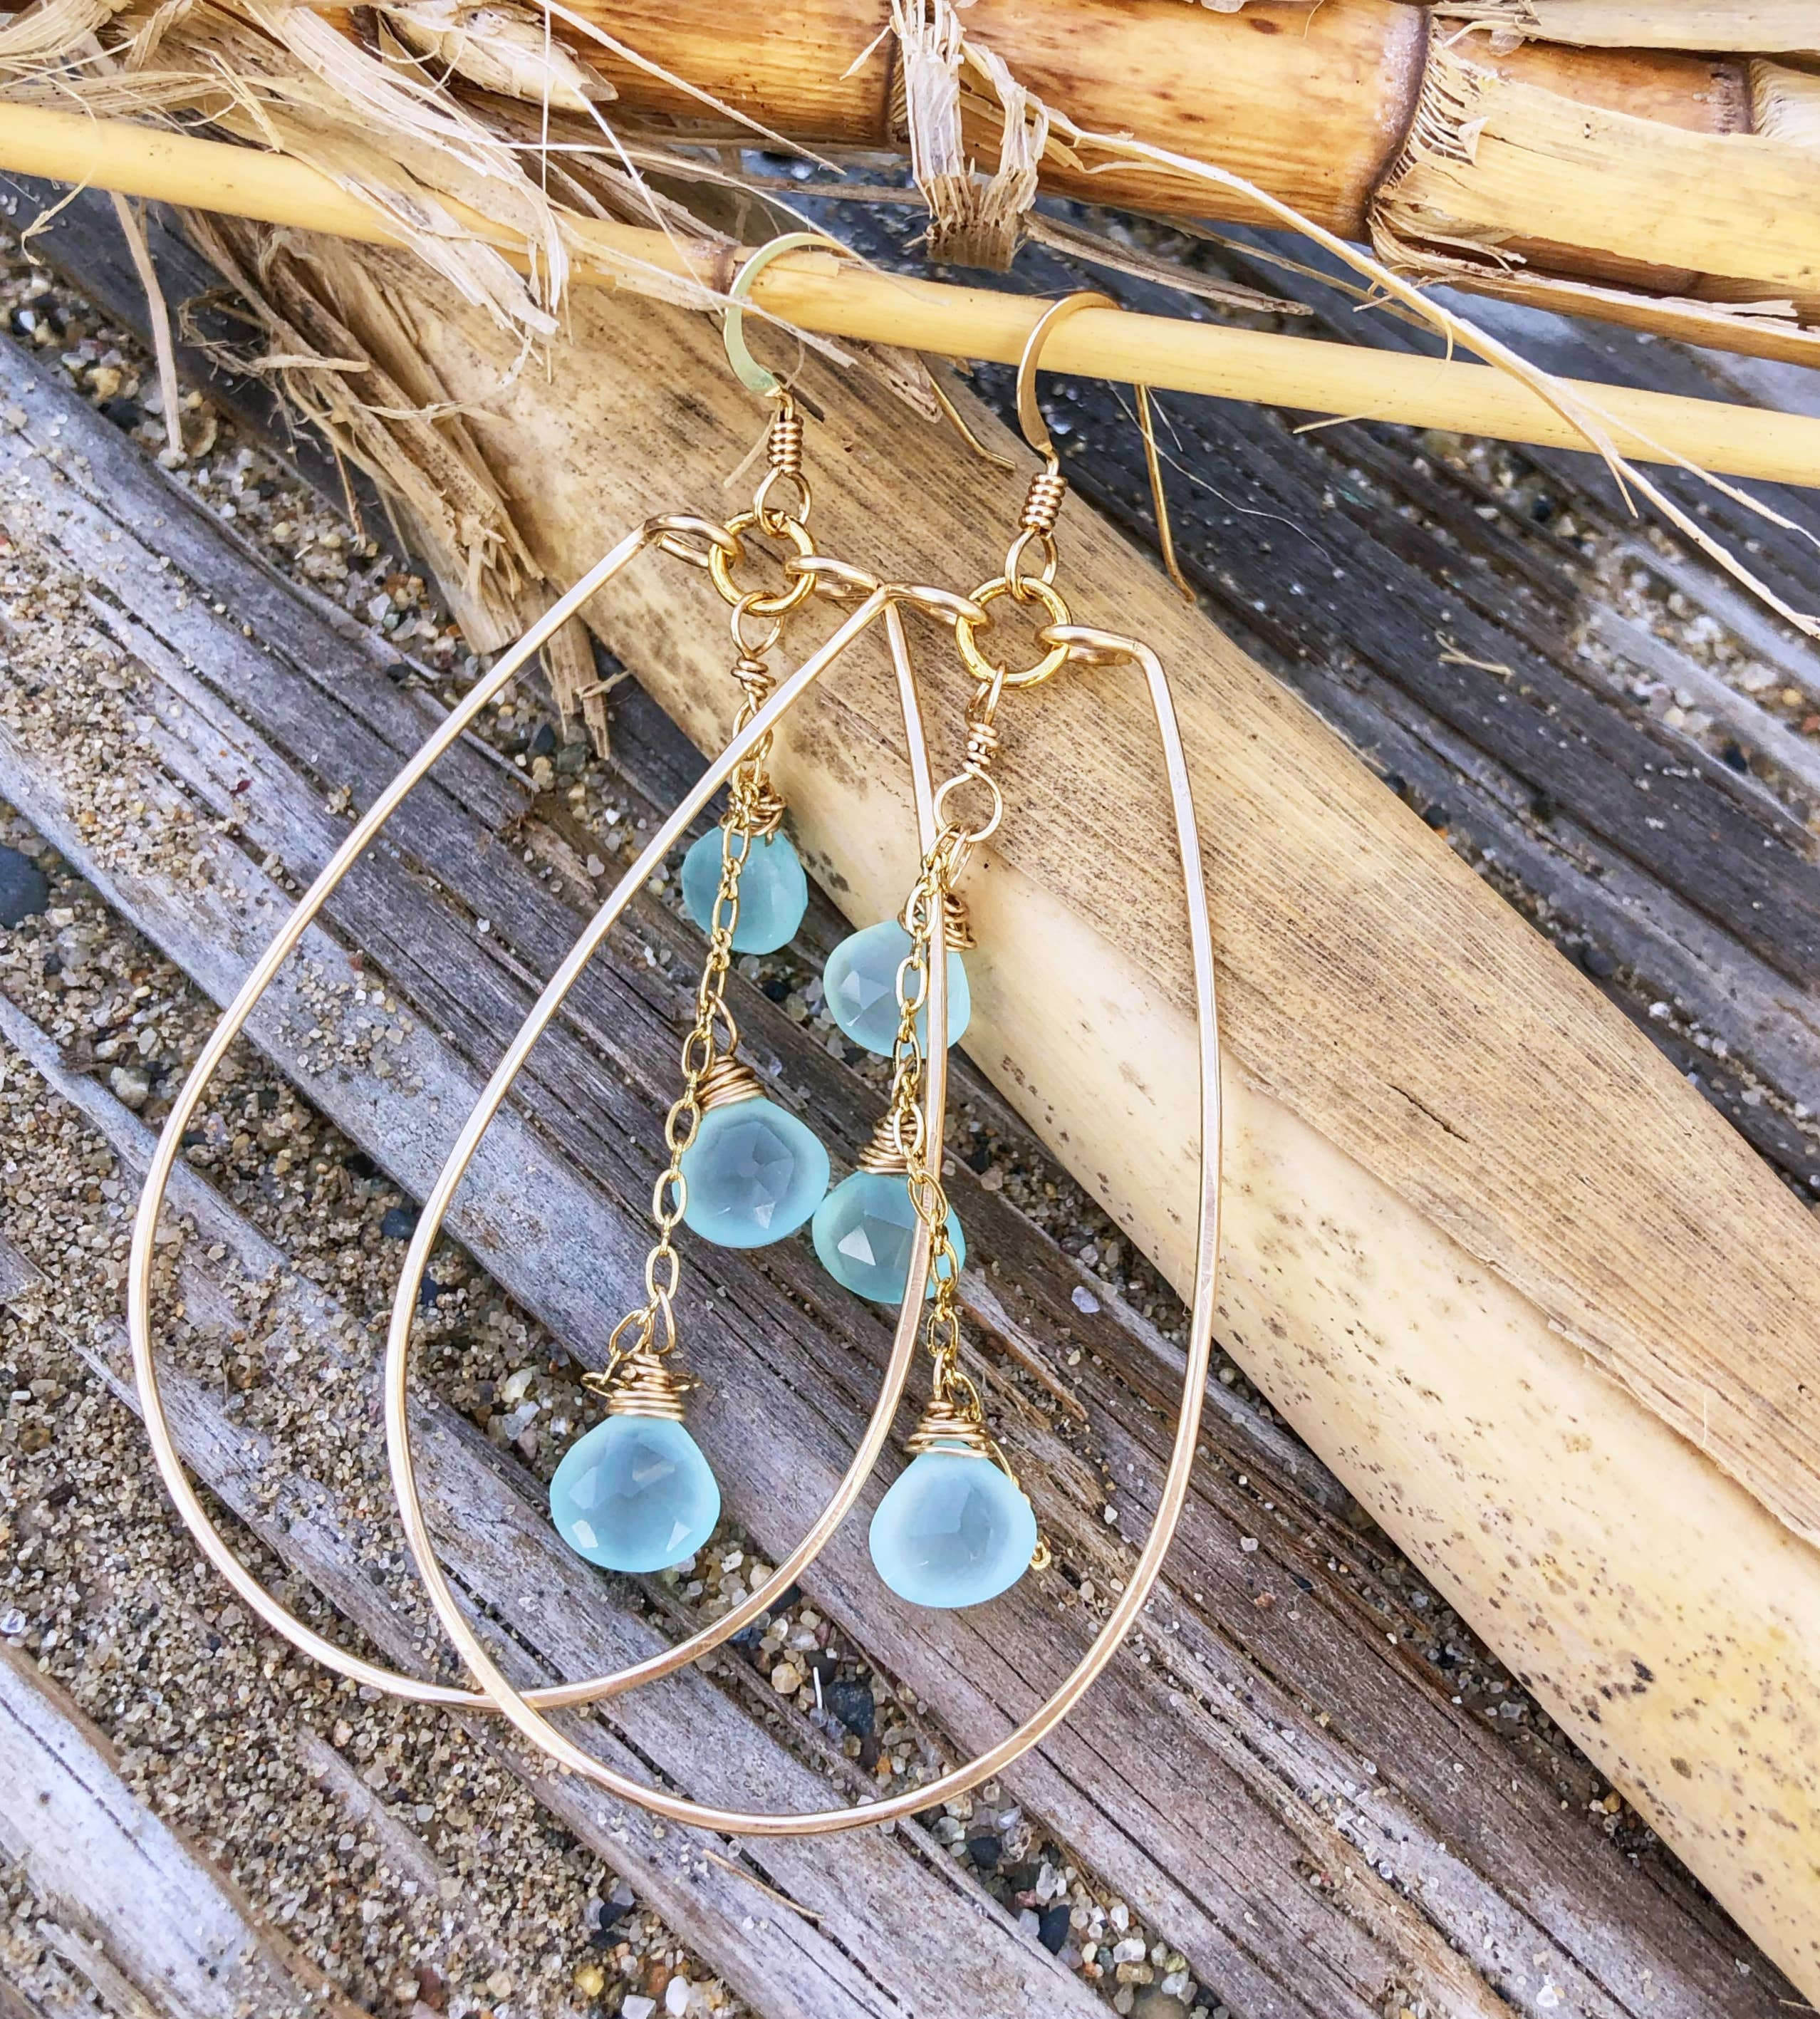 Quinn Sharp Jewelry Designs - Teardrop Hoops with Aqua Chalcedony Triplet